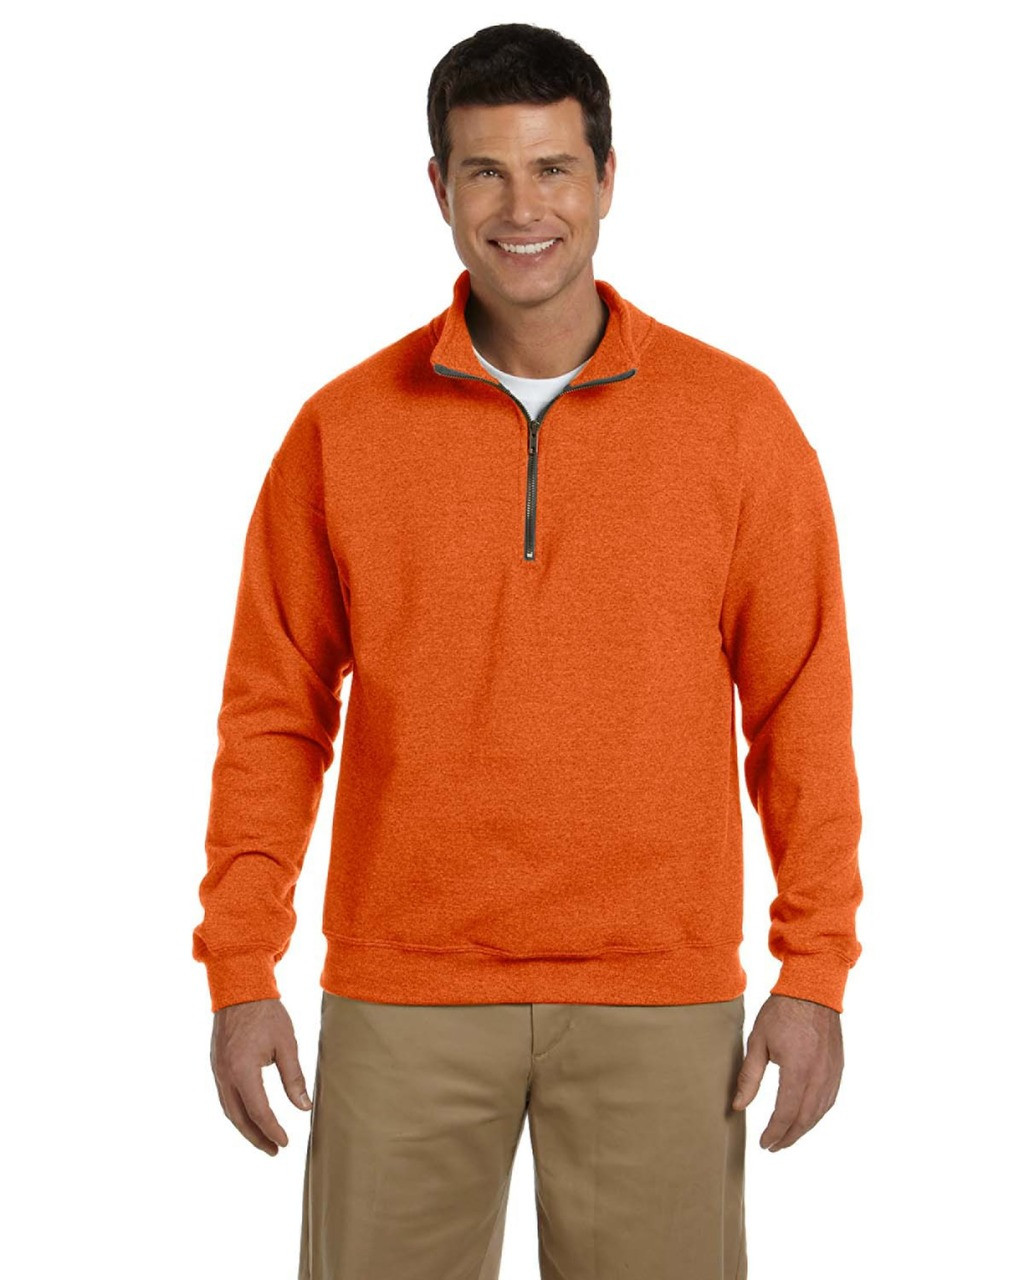 Orange -  G188 Gildan Heavy Blend™ Adult 13.3 oz./lin. yd. Vintage Cadet Collar Sweatshirt | BlankClothing.ca